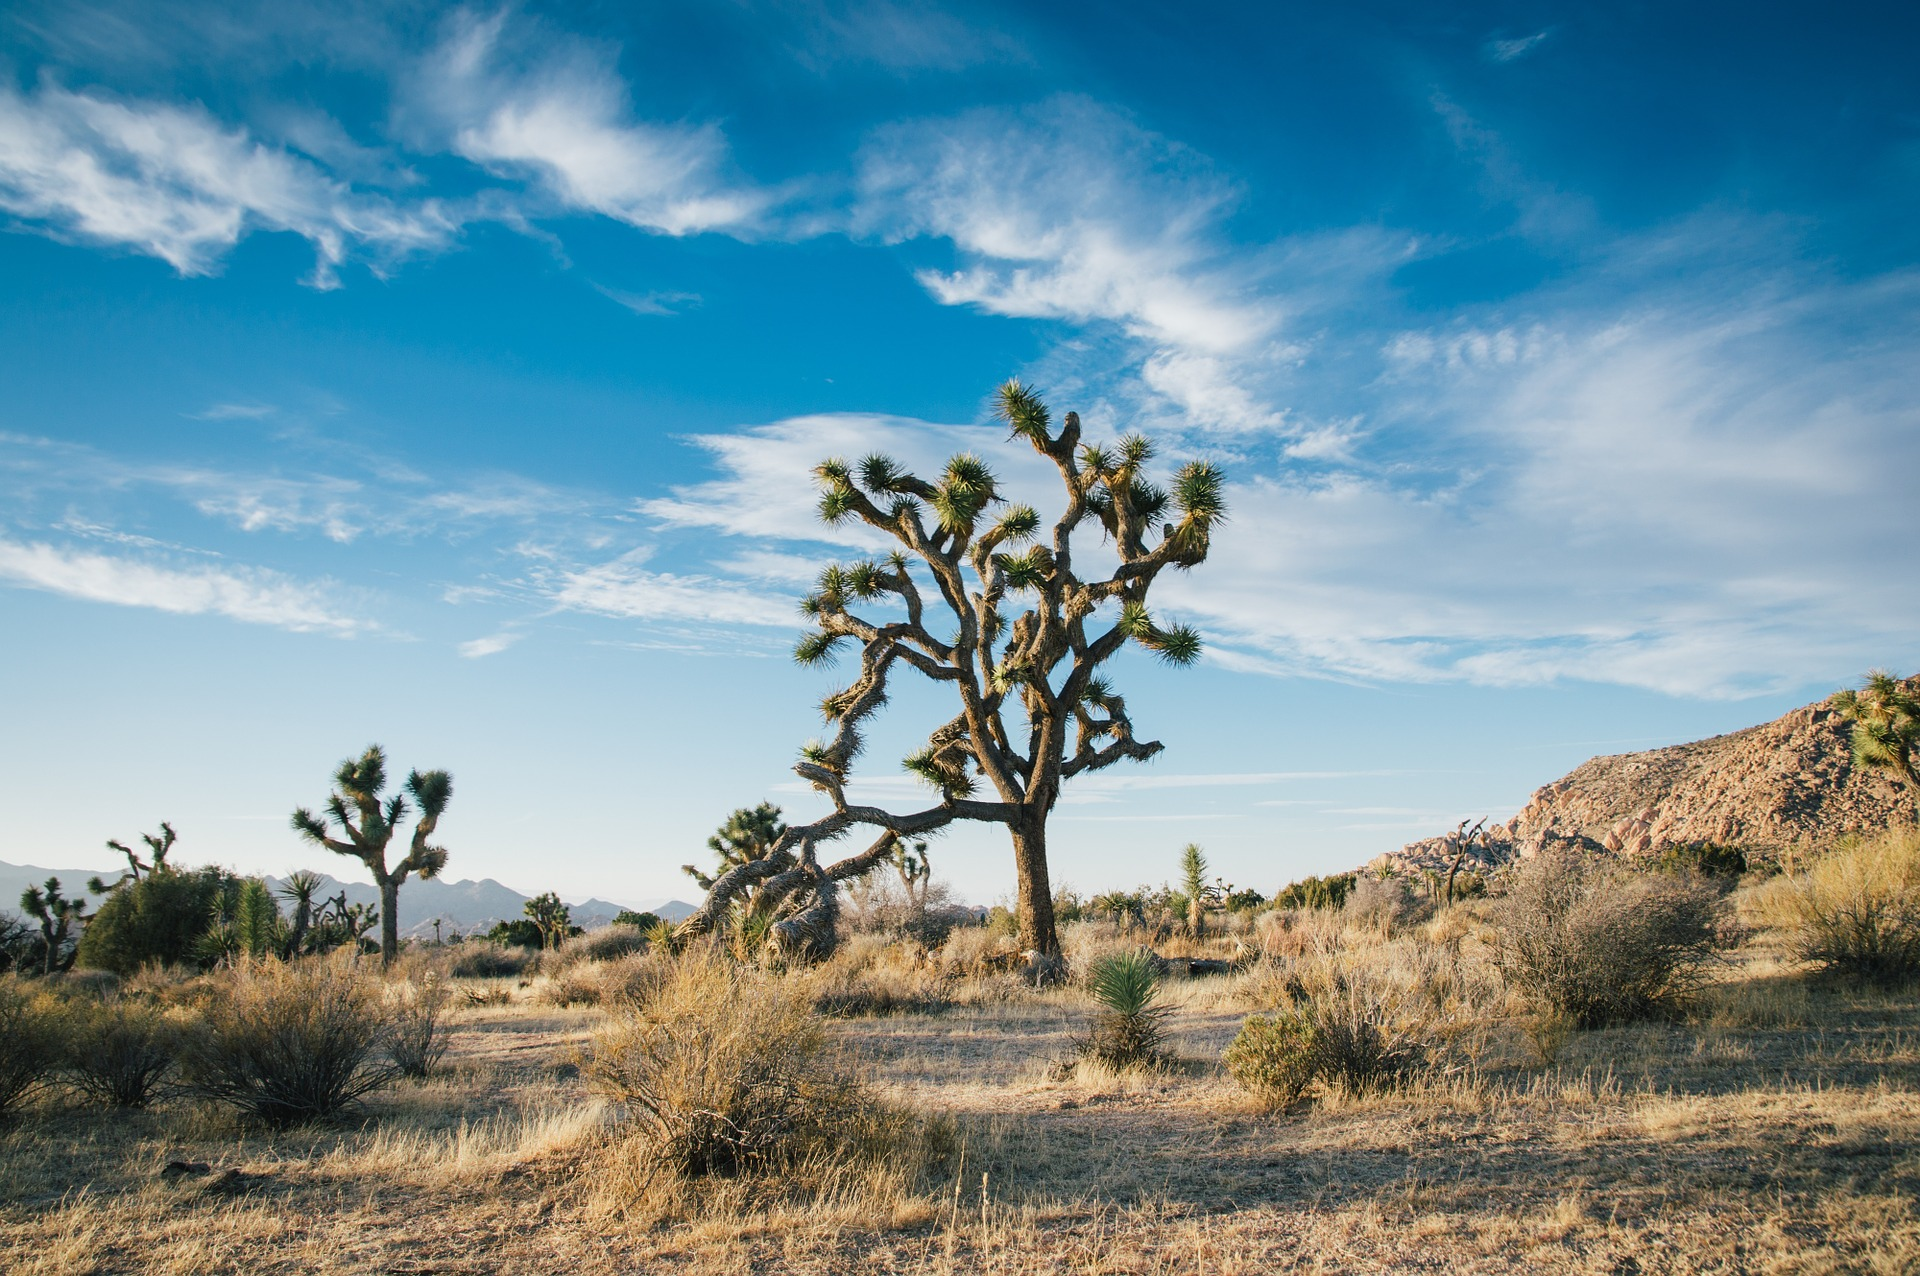 California's Joshua Trees Receive Protected Status As Climate Change Threatens Plant Life